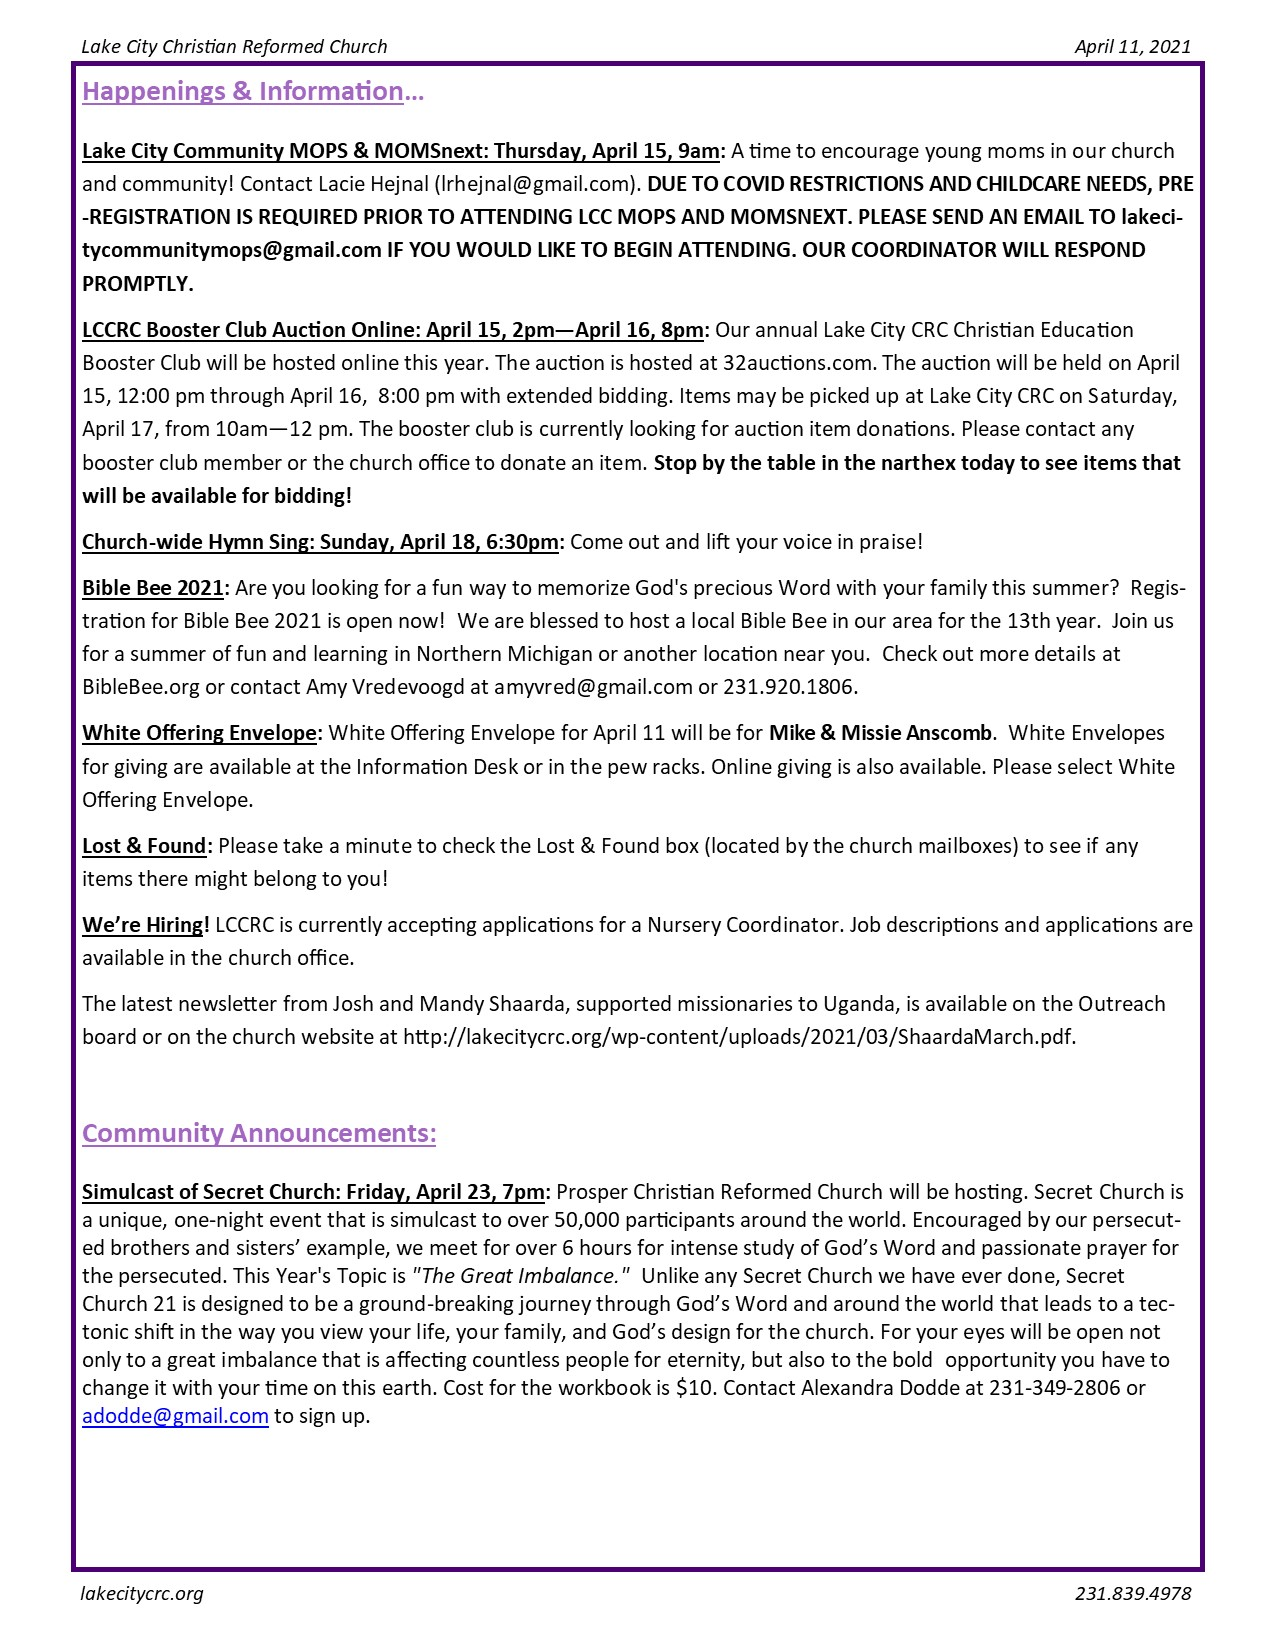 April 11, 2021 Bulletin Insert